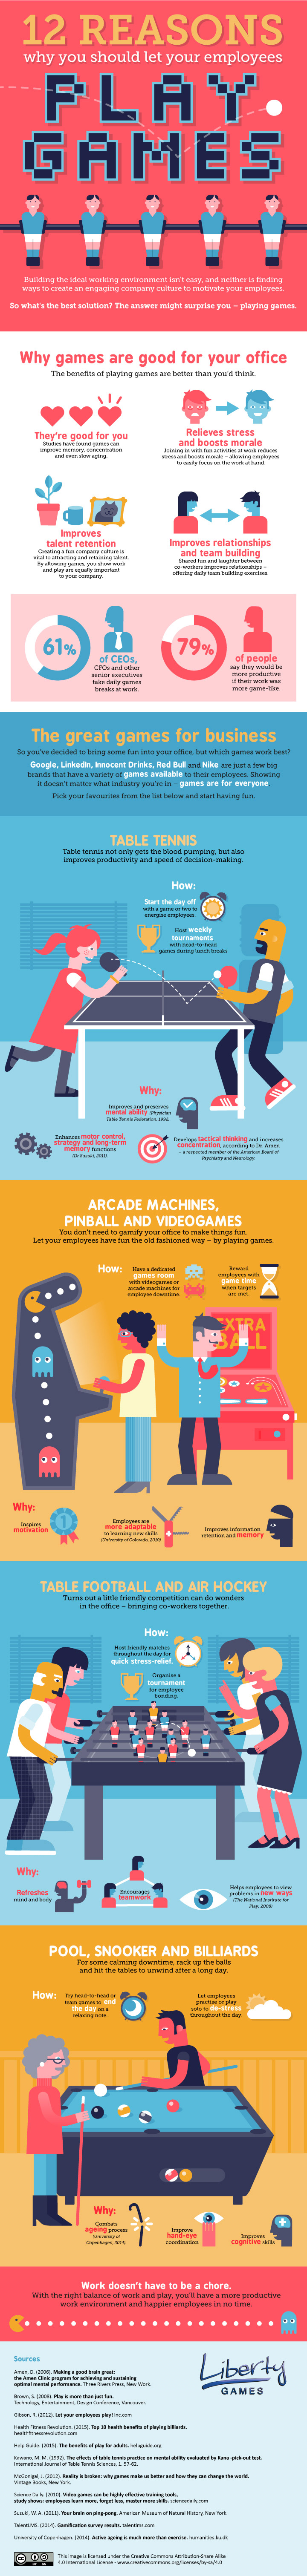 1475856242_12-reasons-let-your-employees-play-games-infographic